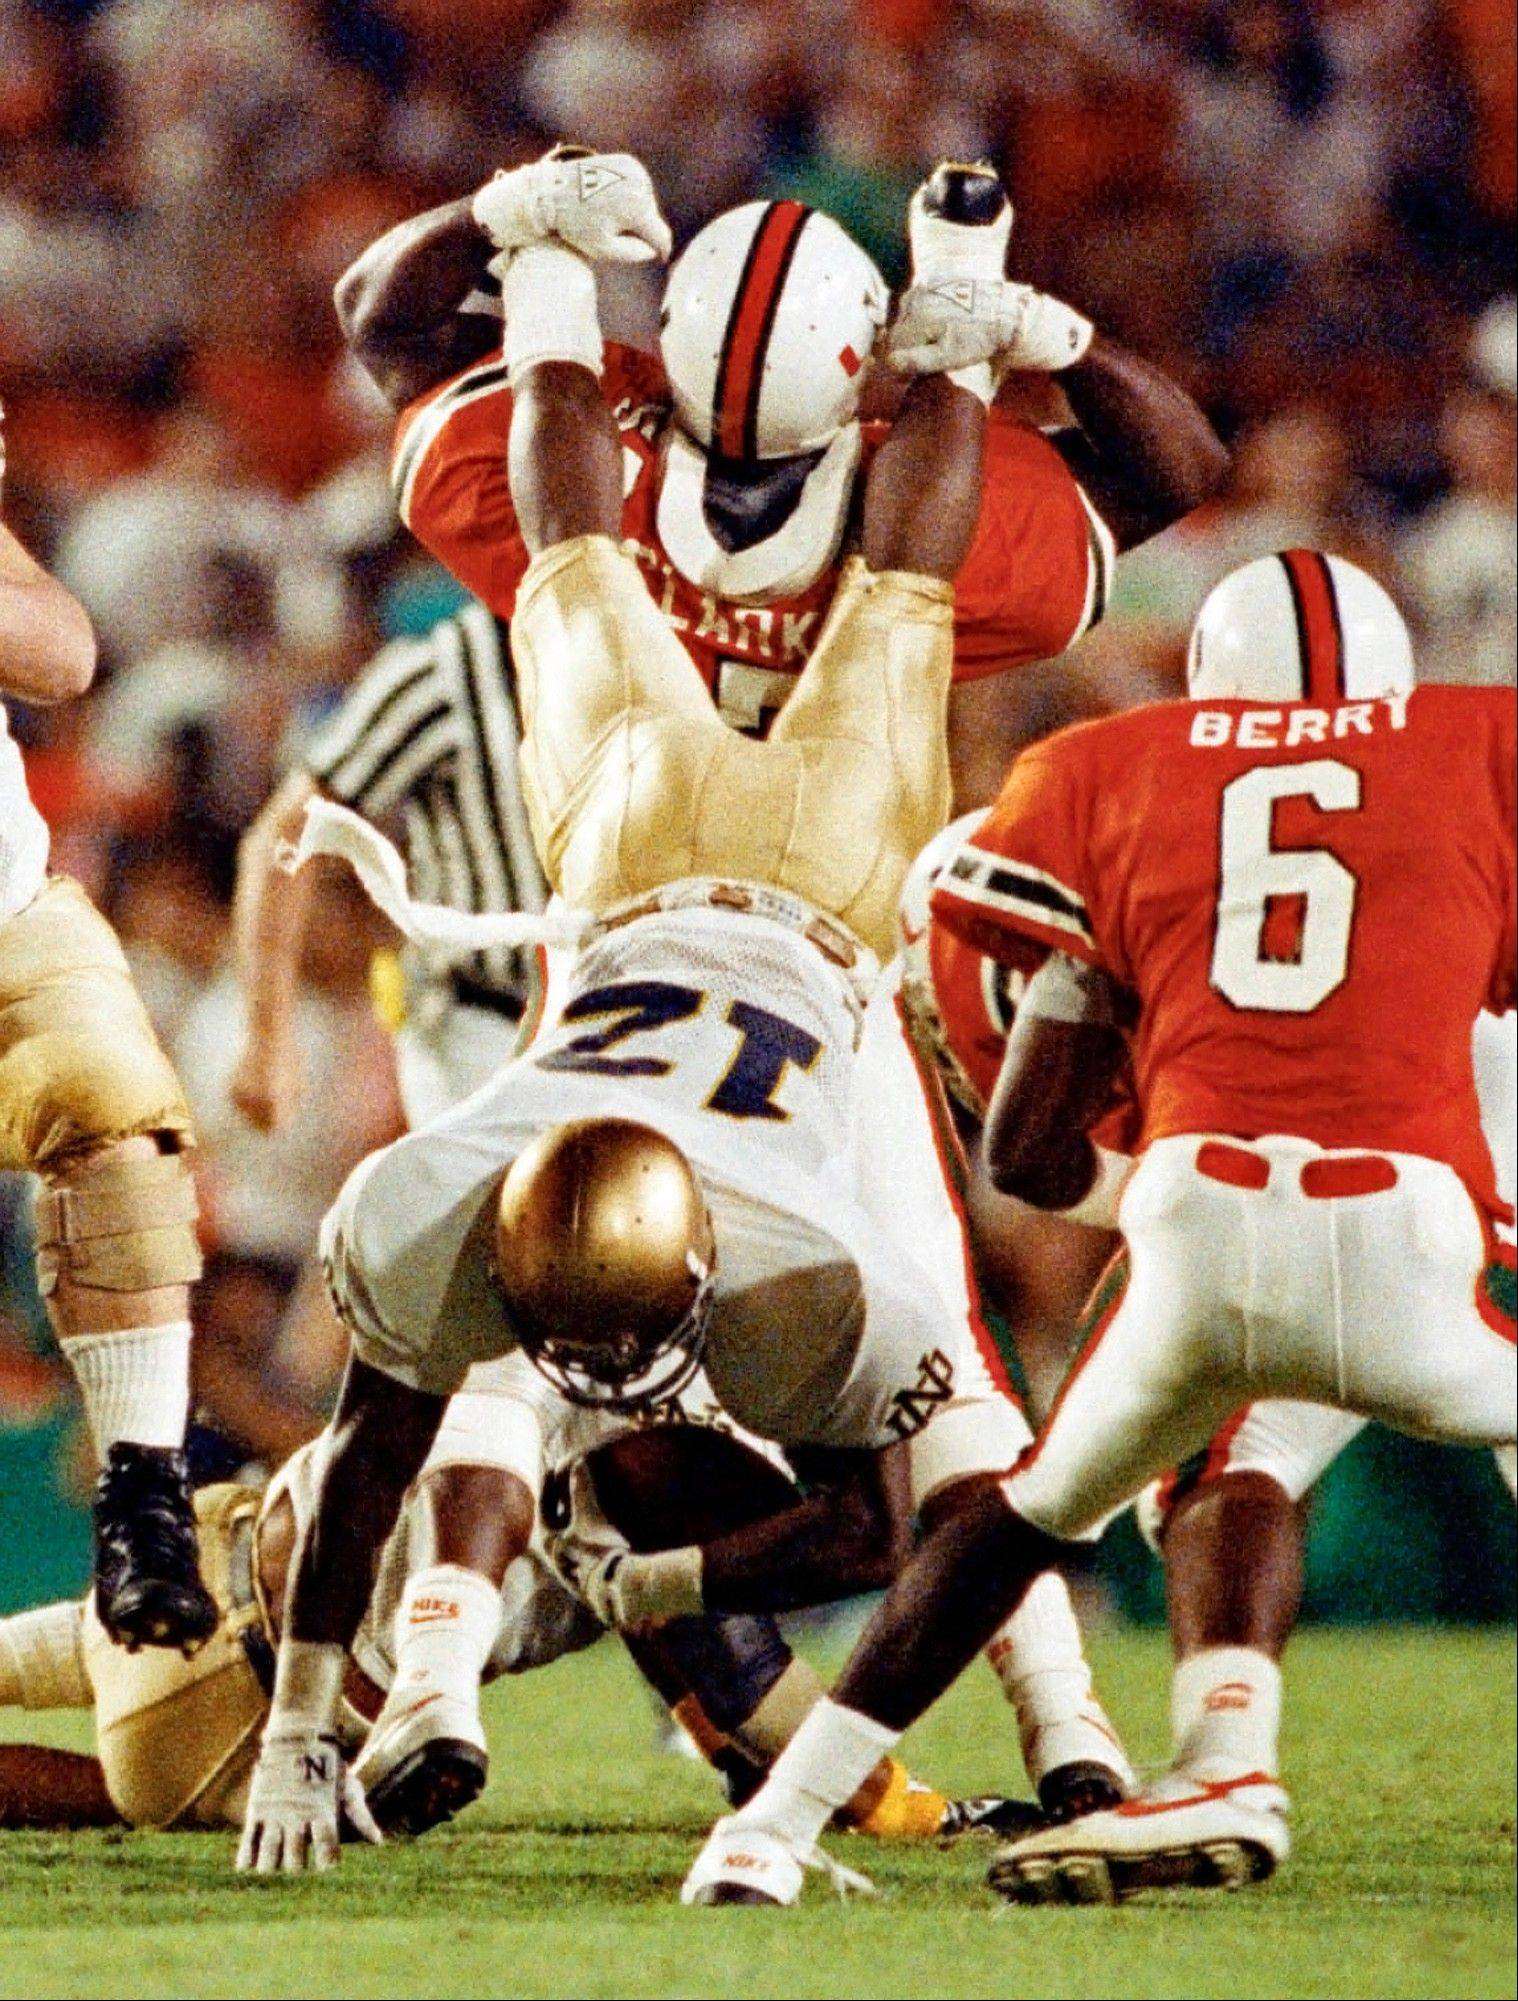 Notre Dame tailback Ricky Watters gets upended by Miami linebacker Bernard Clark during the first half at the Orange Bowl at Miami. For the first time in nearly a quarter-century, the Fighting Irish and Hurricanes are meeting in a regular-season game. The rivalry will be renewed Saturday at Soldier Field.